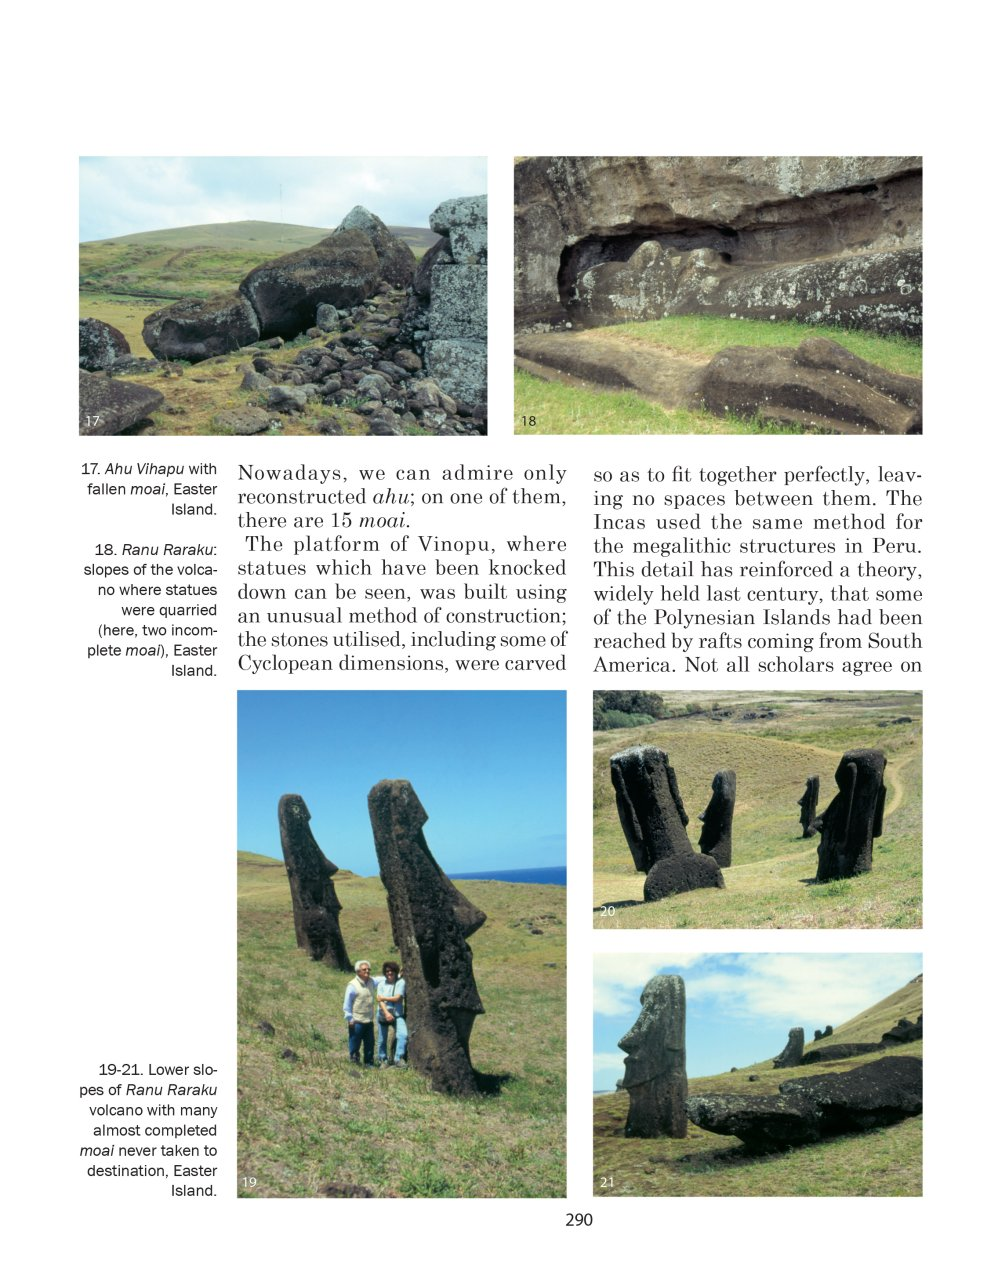 Easter Island - picture from Alberto Pozzi in his book Megalithism